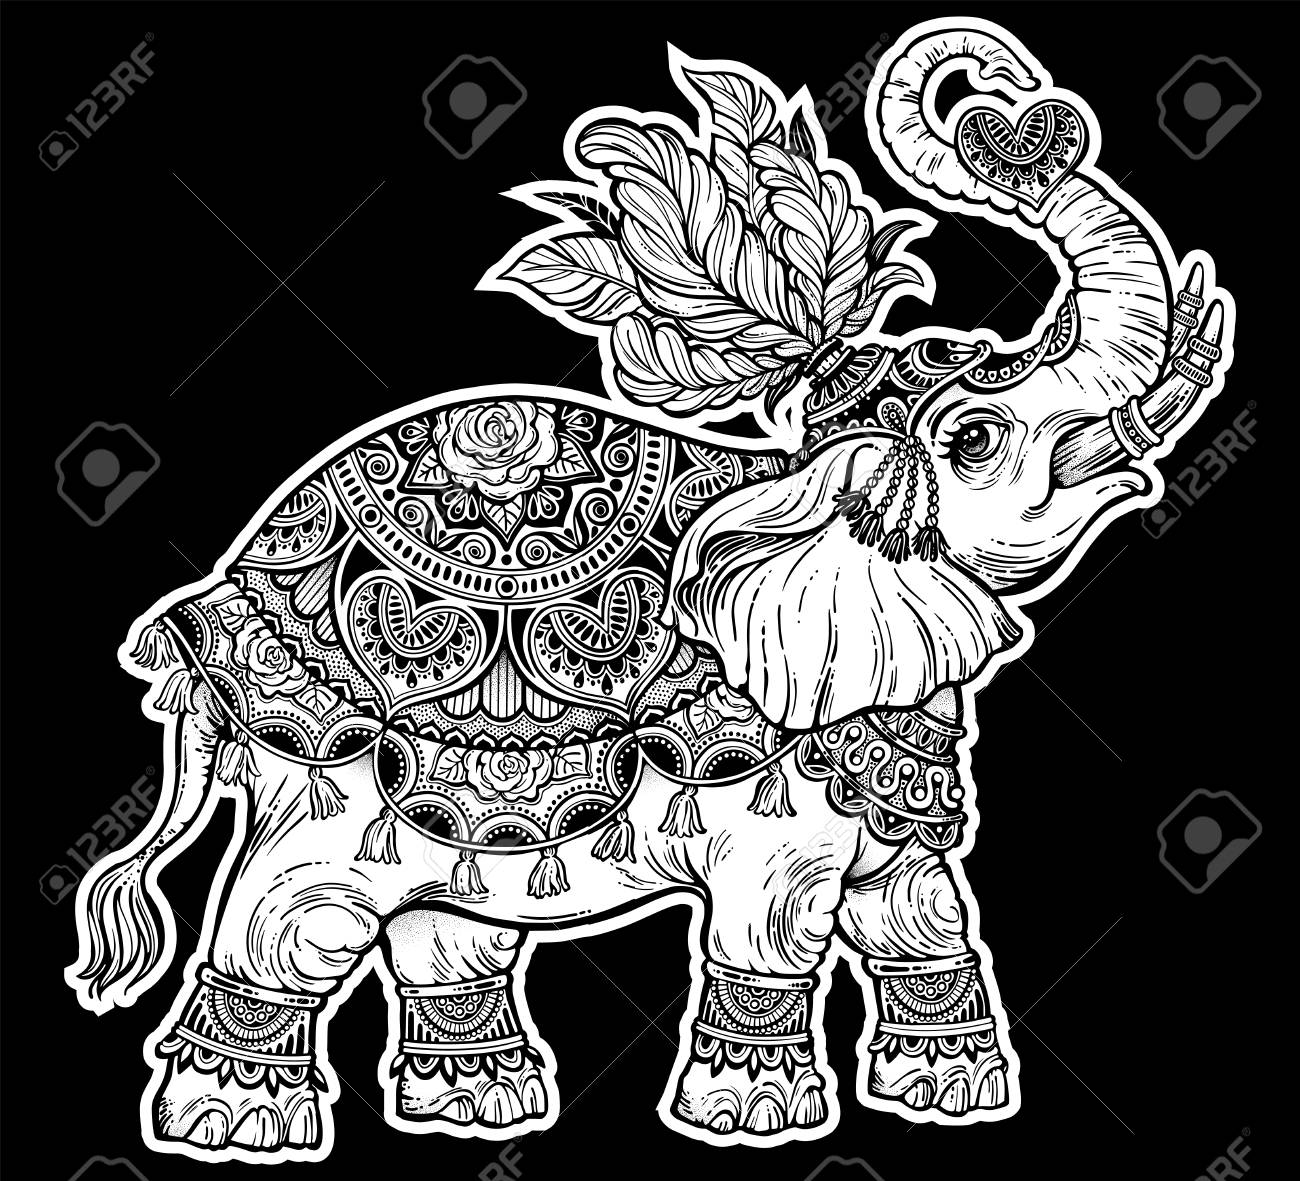 indian ornate ethnic circus boho elephant with feathers african